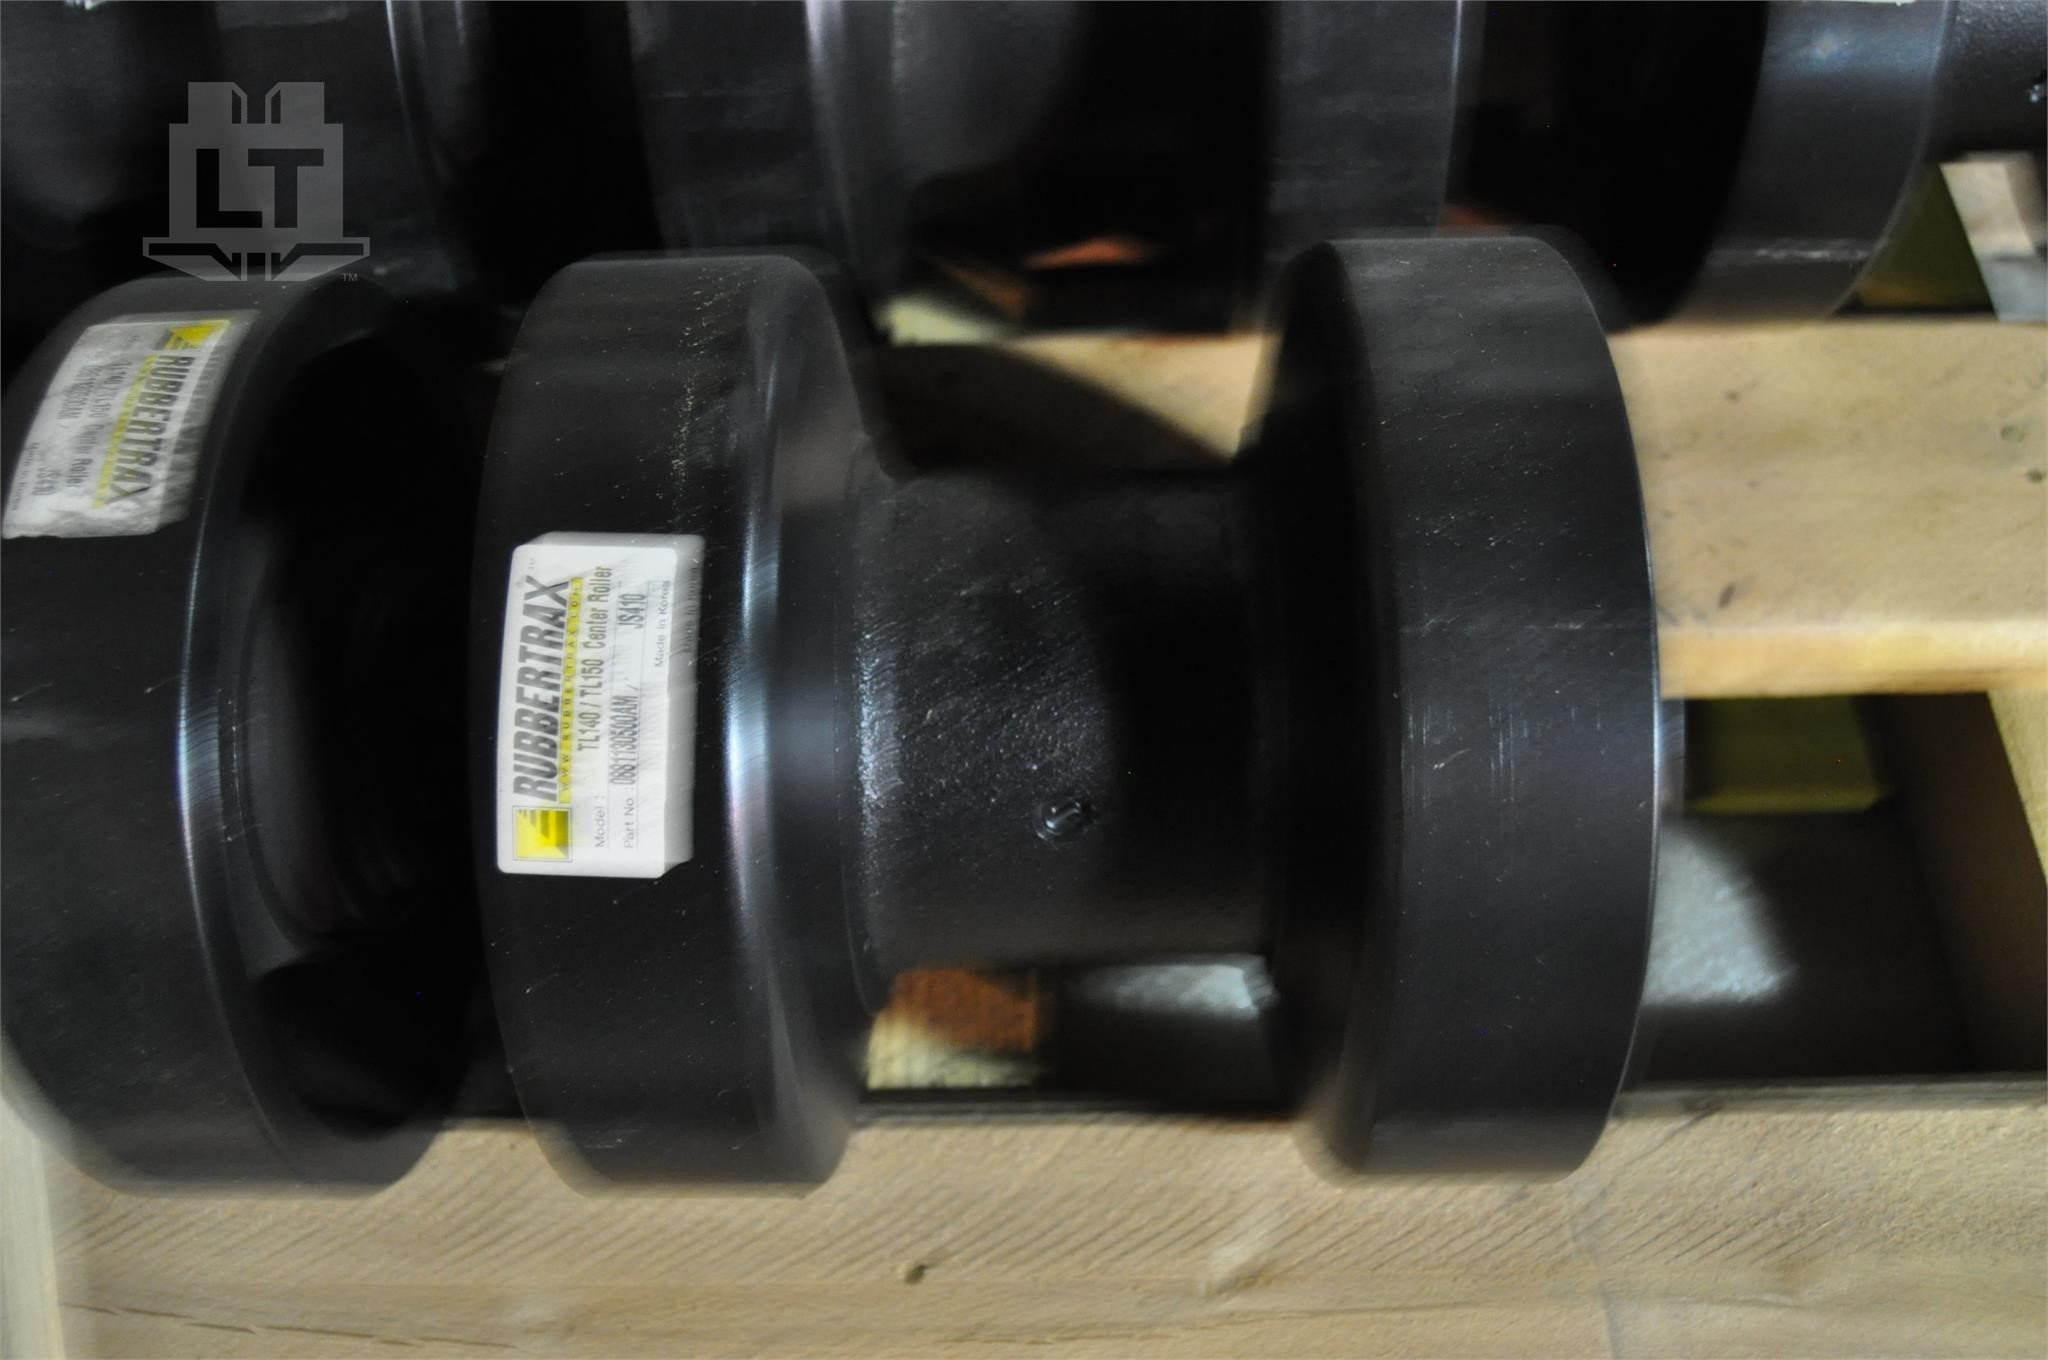 Lift Parts For Sale From Rubbertrax, Inc  - Conyers, Georgia - 64